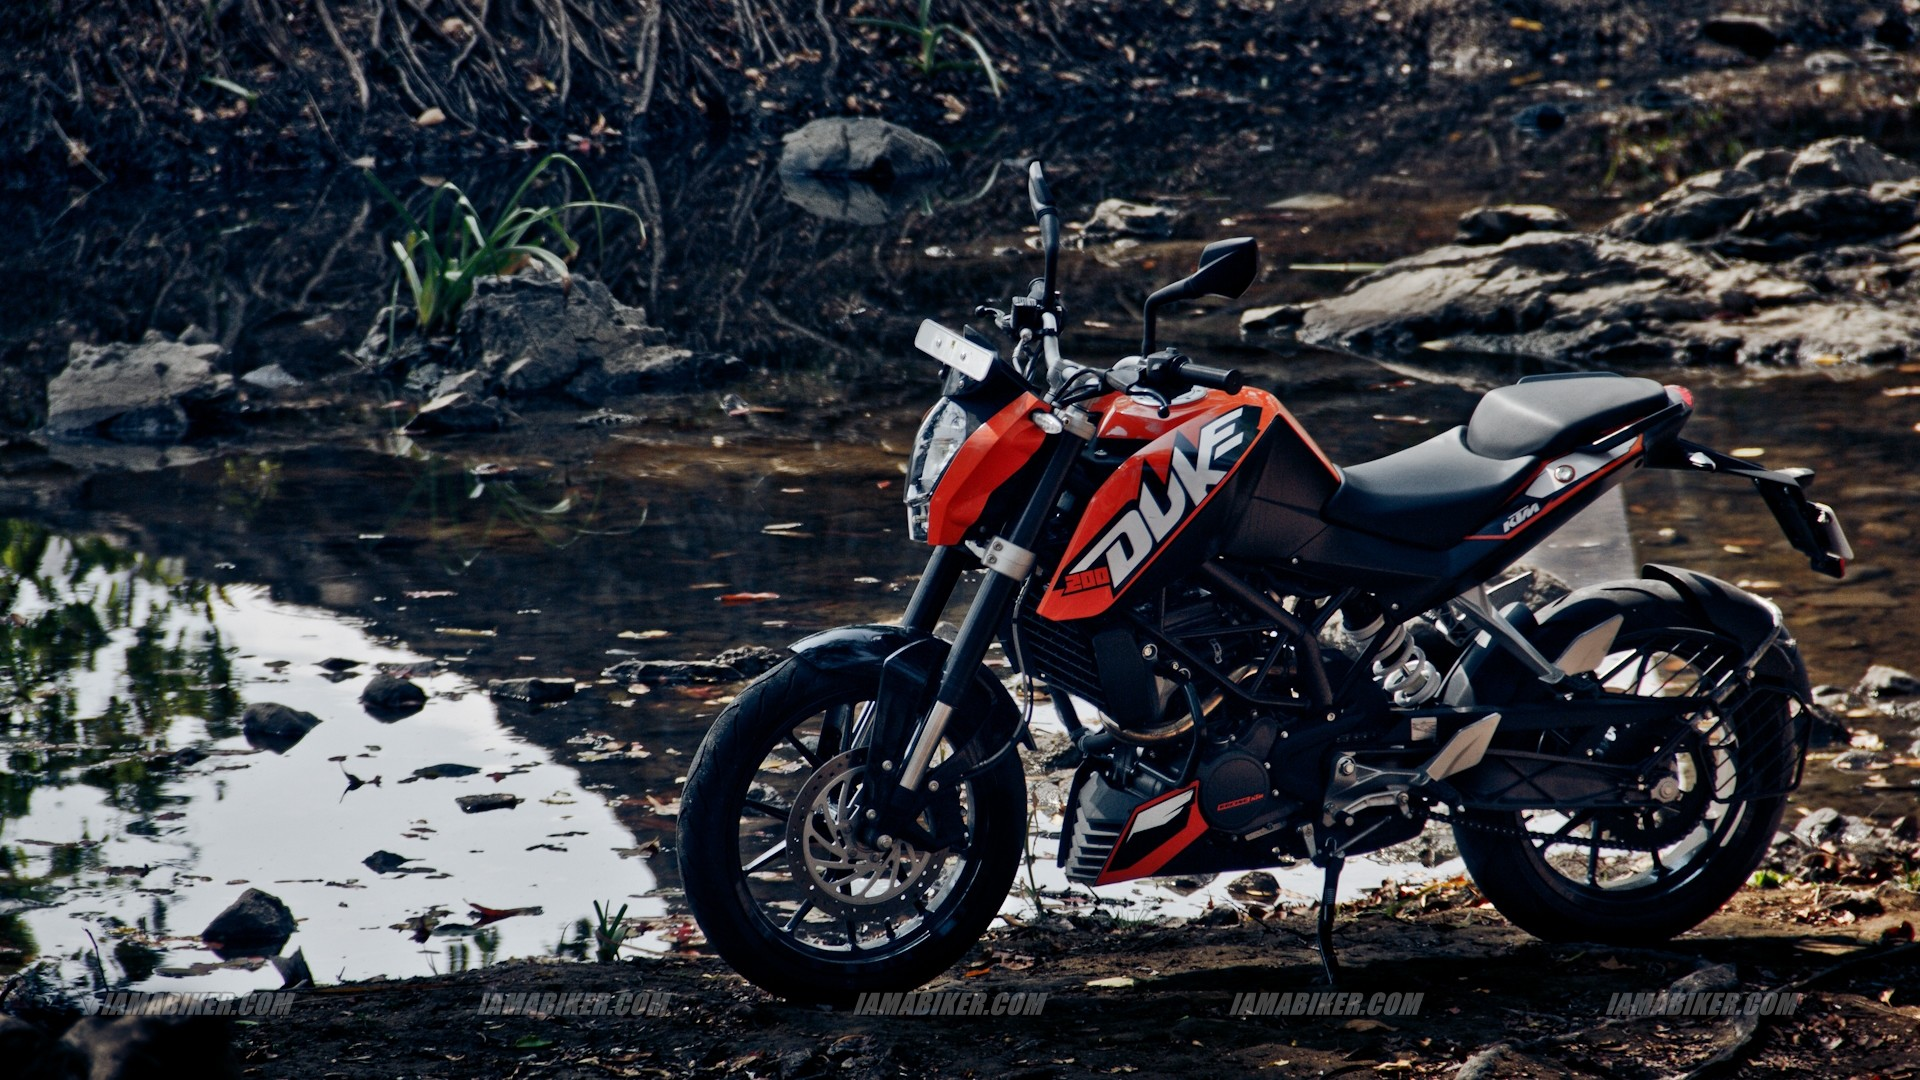 Res: 1920x1080, KTM Duke 200 HD wallpaper gallery. Click on picture to see high resolution  image.